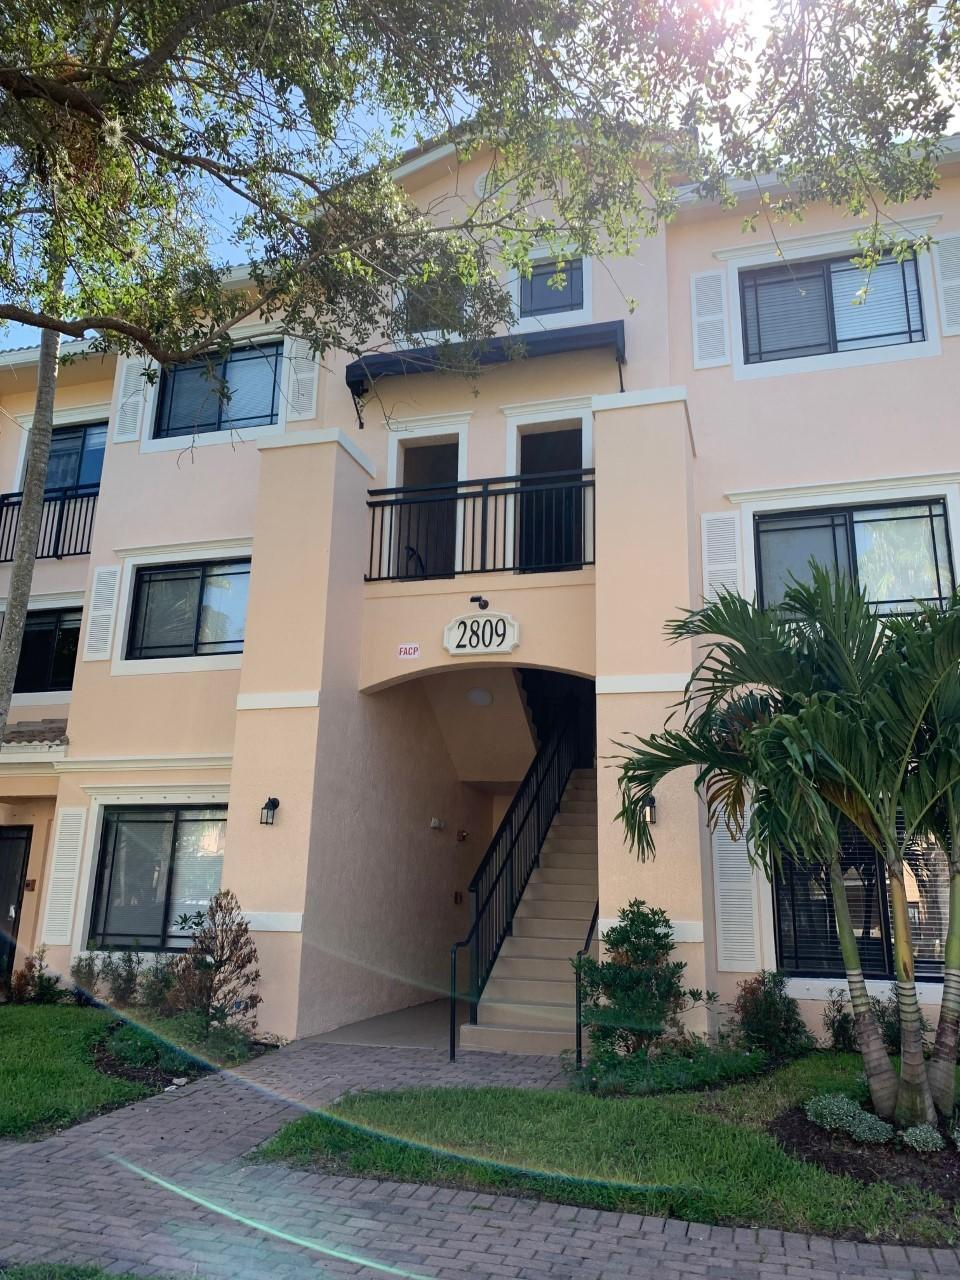 **2BR/2BA THIRD FLOOR CONDO WITH NEW VINYL WOOD FLOORING BEING INSTALLED, NEWER AC SYSTEM & GRANITE KITCHEN COUNTERS** **WALKIN CLOSETS** **SMALL UTILITY ROOM WITH WASHER & DRYER** **HURRICANE IMPACT GLASS** **UNIT COMES WITH STORAGE CLOSET** SCREENED-IN BALCONY**